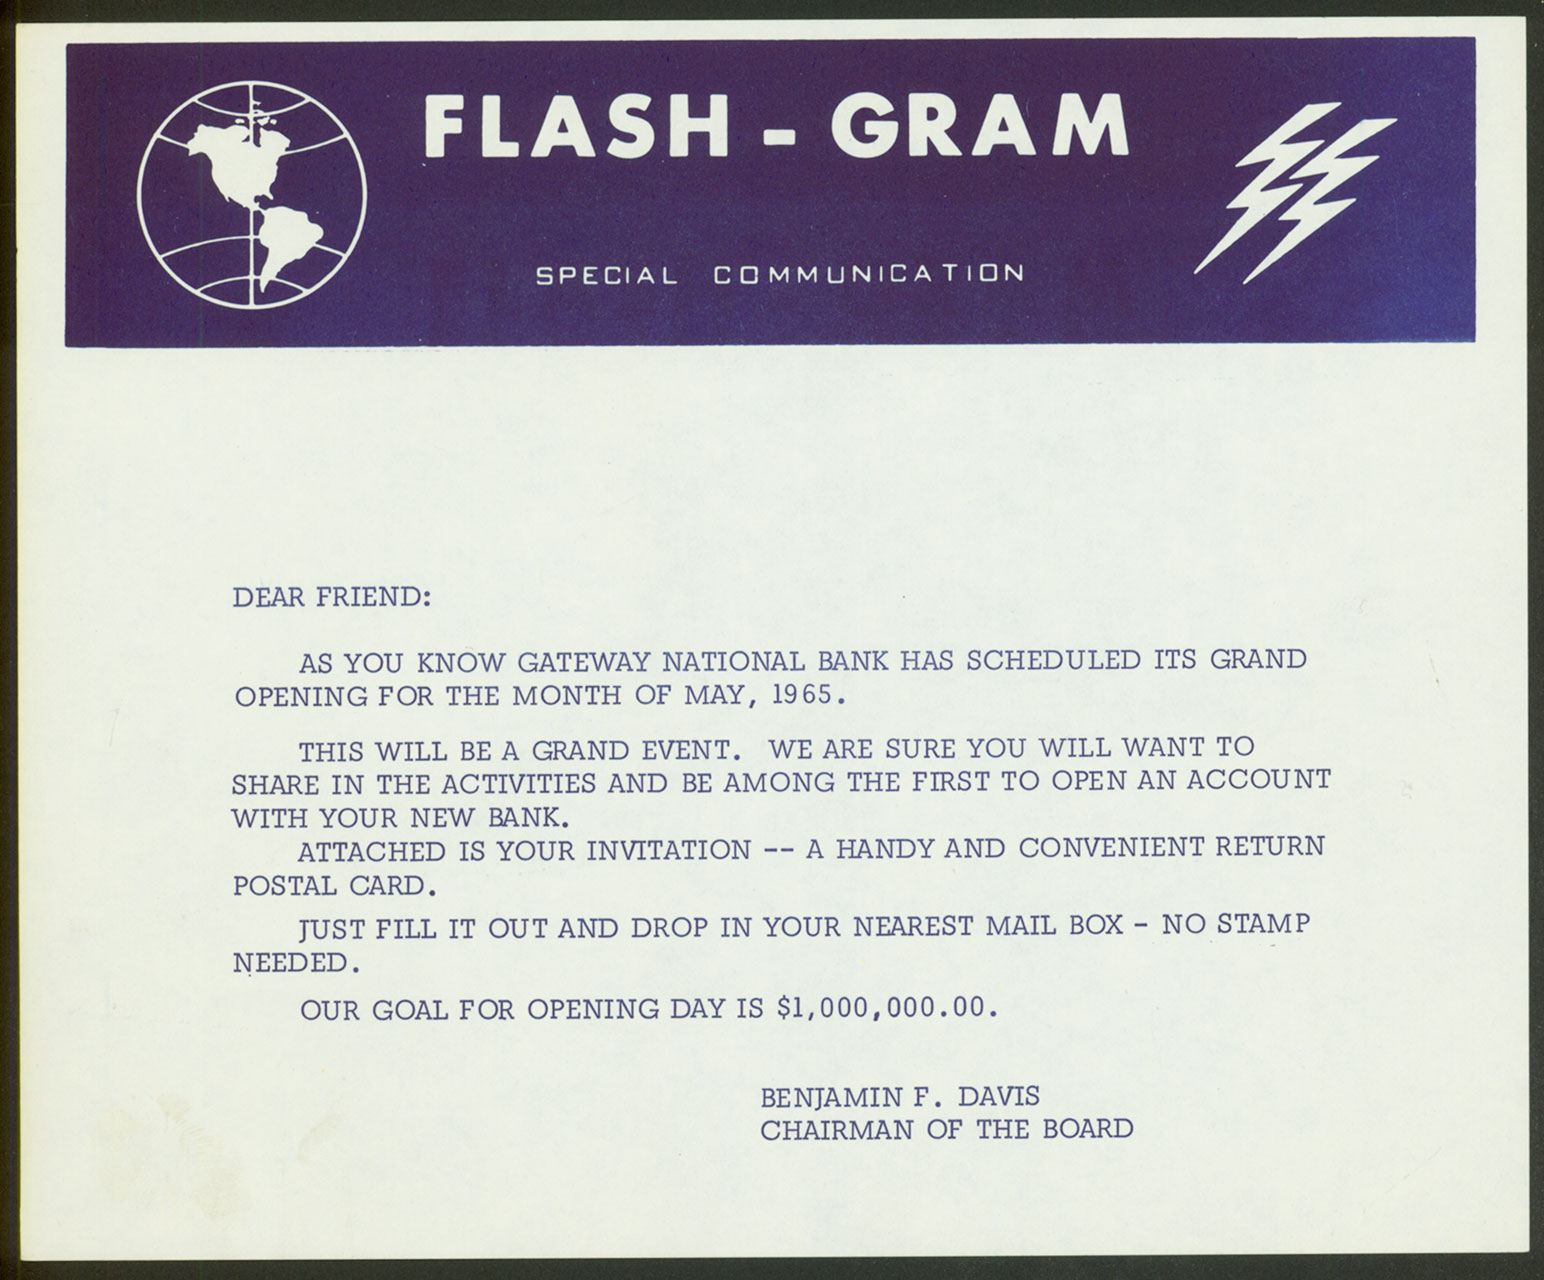 Flash Gram Invite